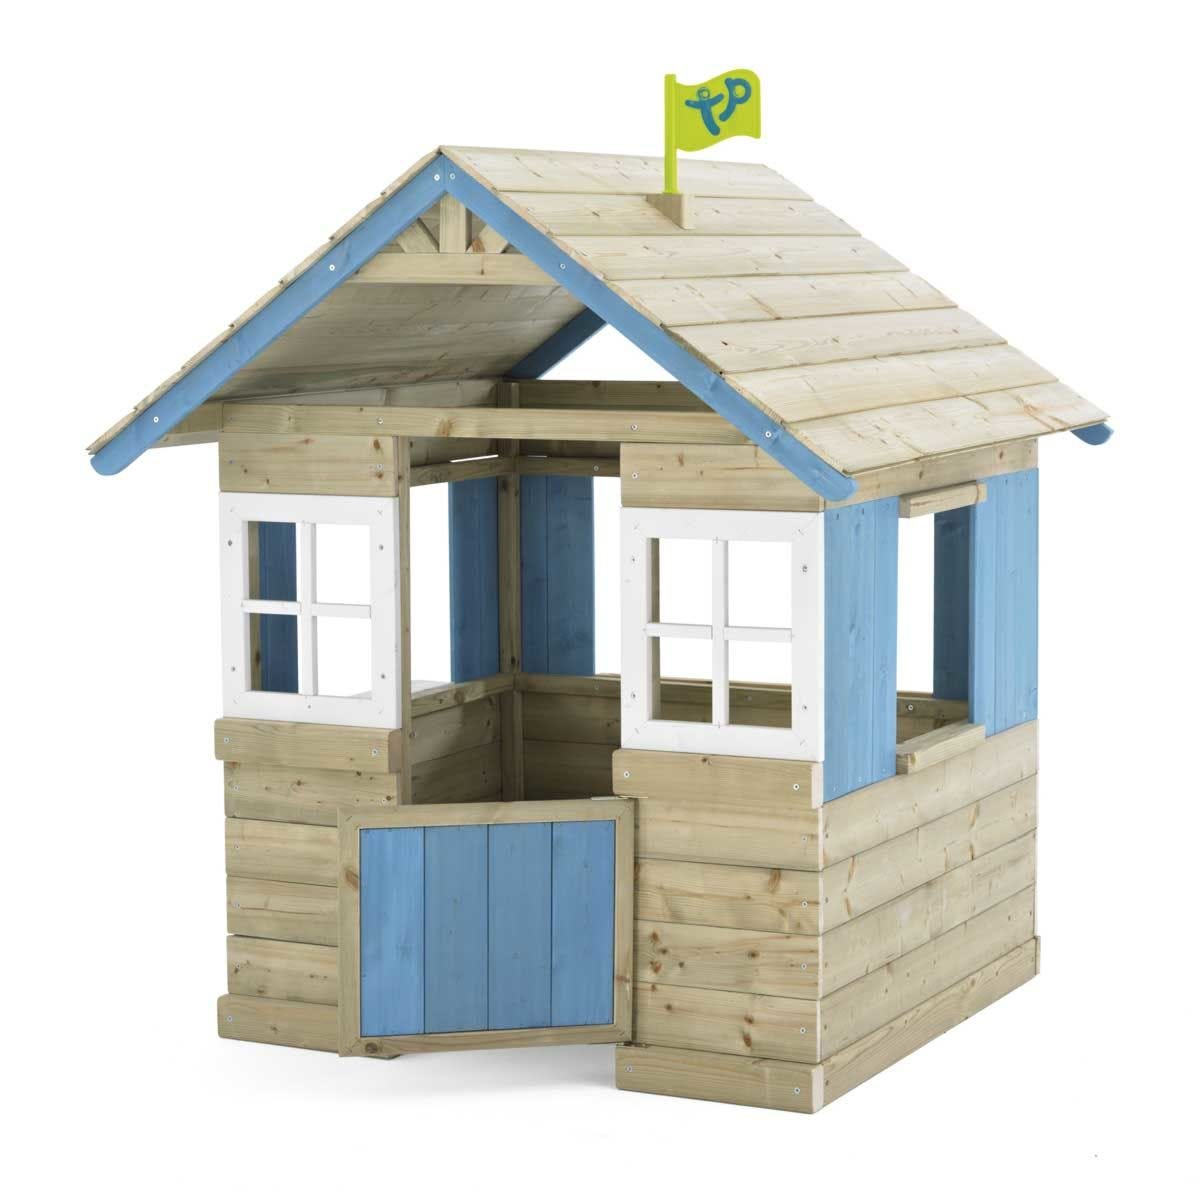 TP Toys Bramble Cottage Playhouse